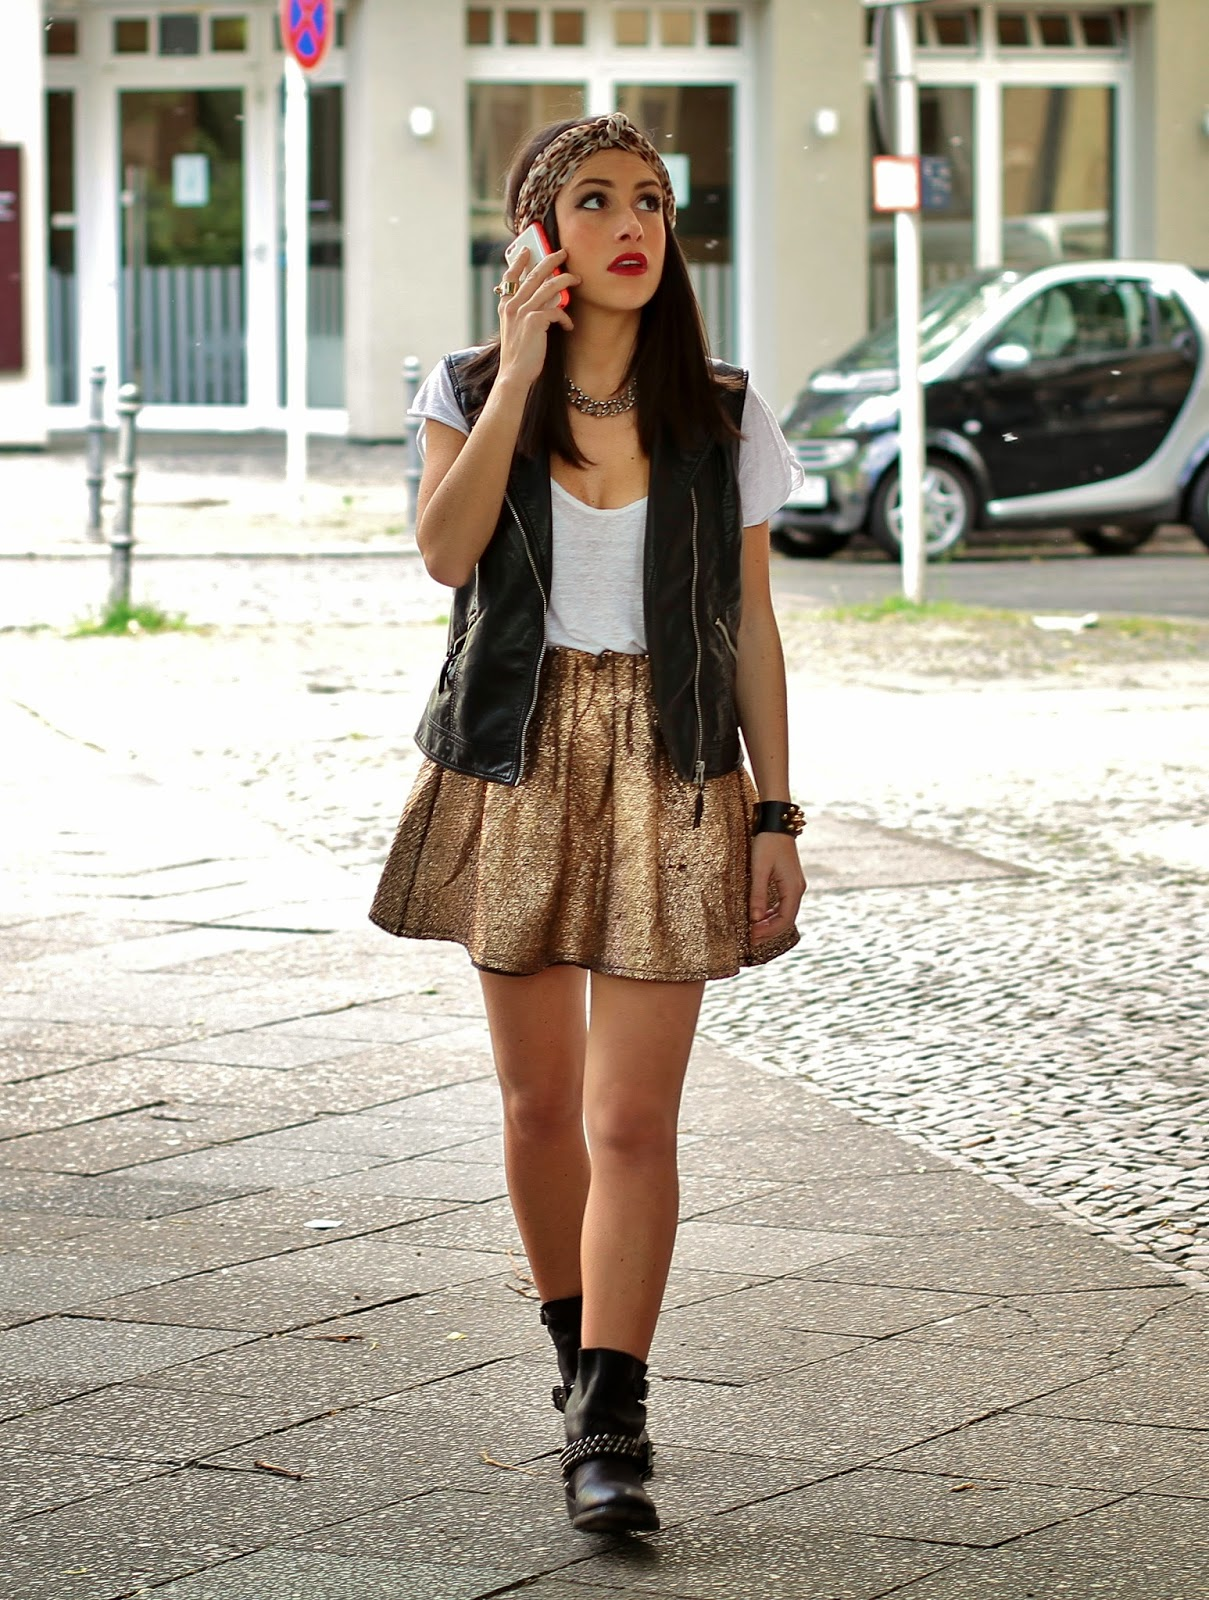 street-style-chic-etoile-francesca-castellano-outfit-of-the-day